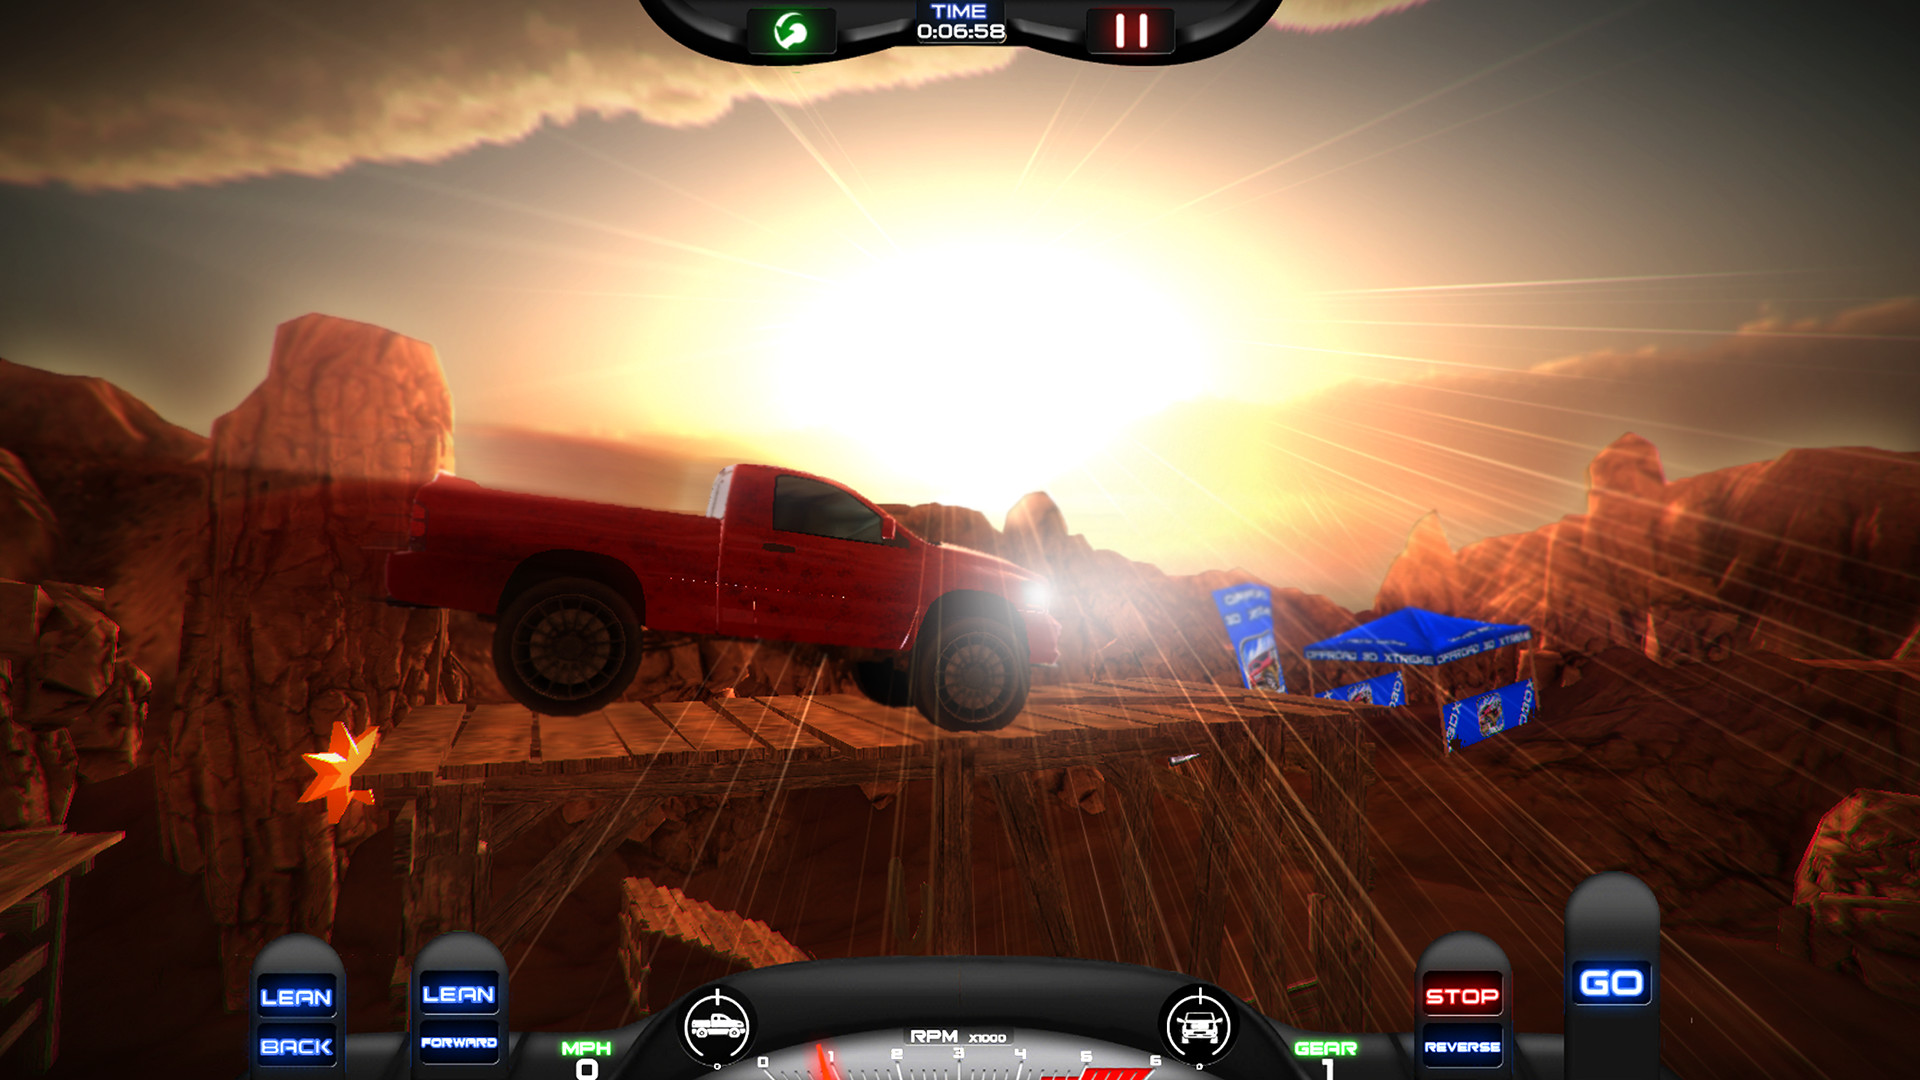 O3DX,PLAZA,العاب,سباقات,سيارات,اكشن,ACTION,GAMES,RACES,CARS